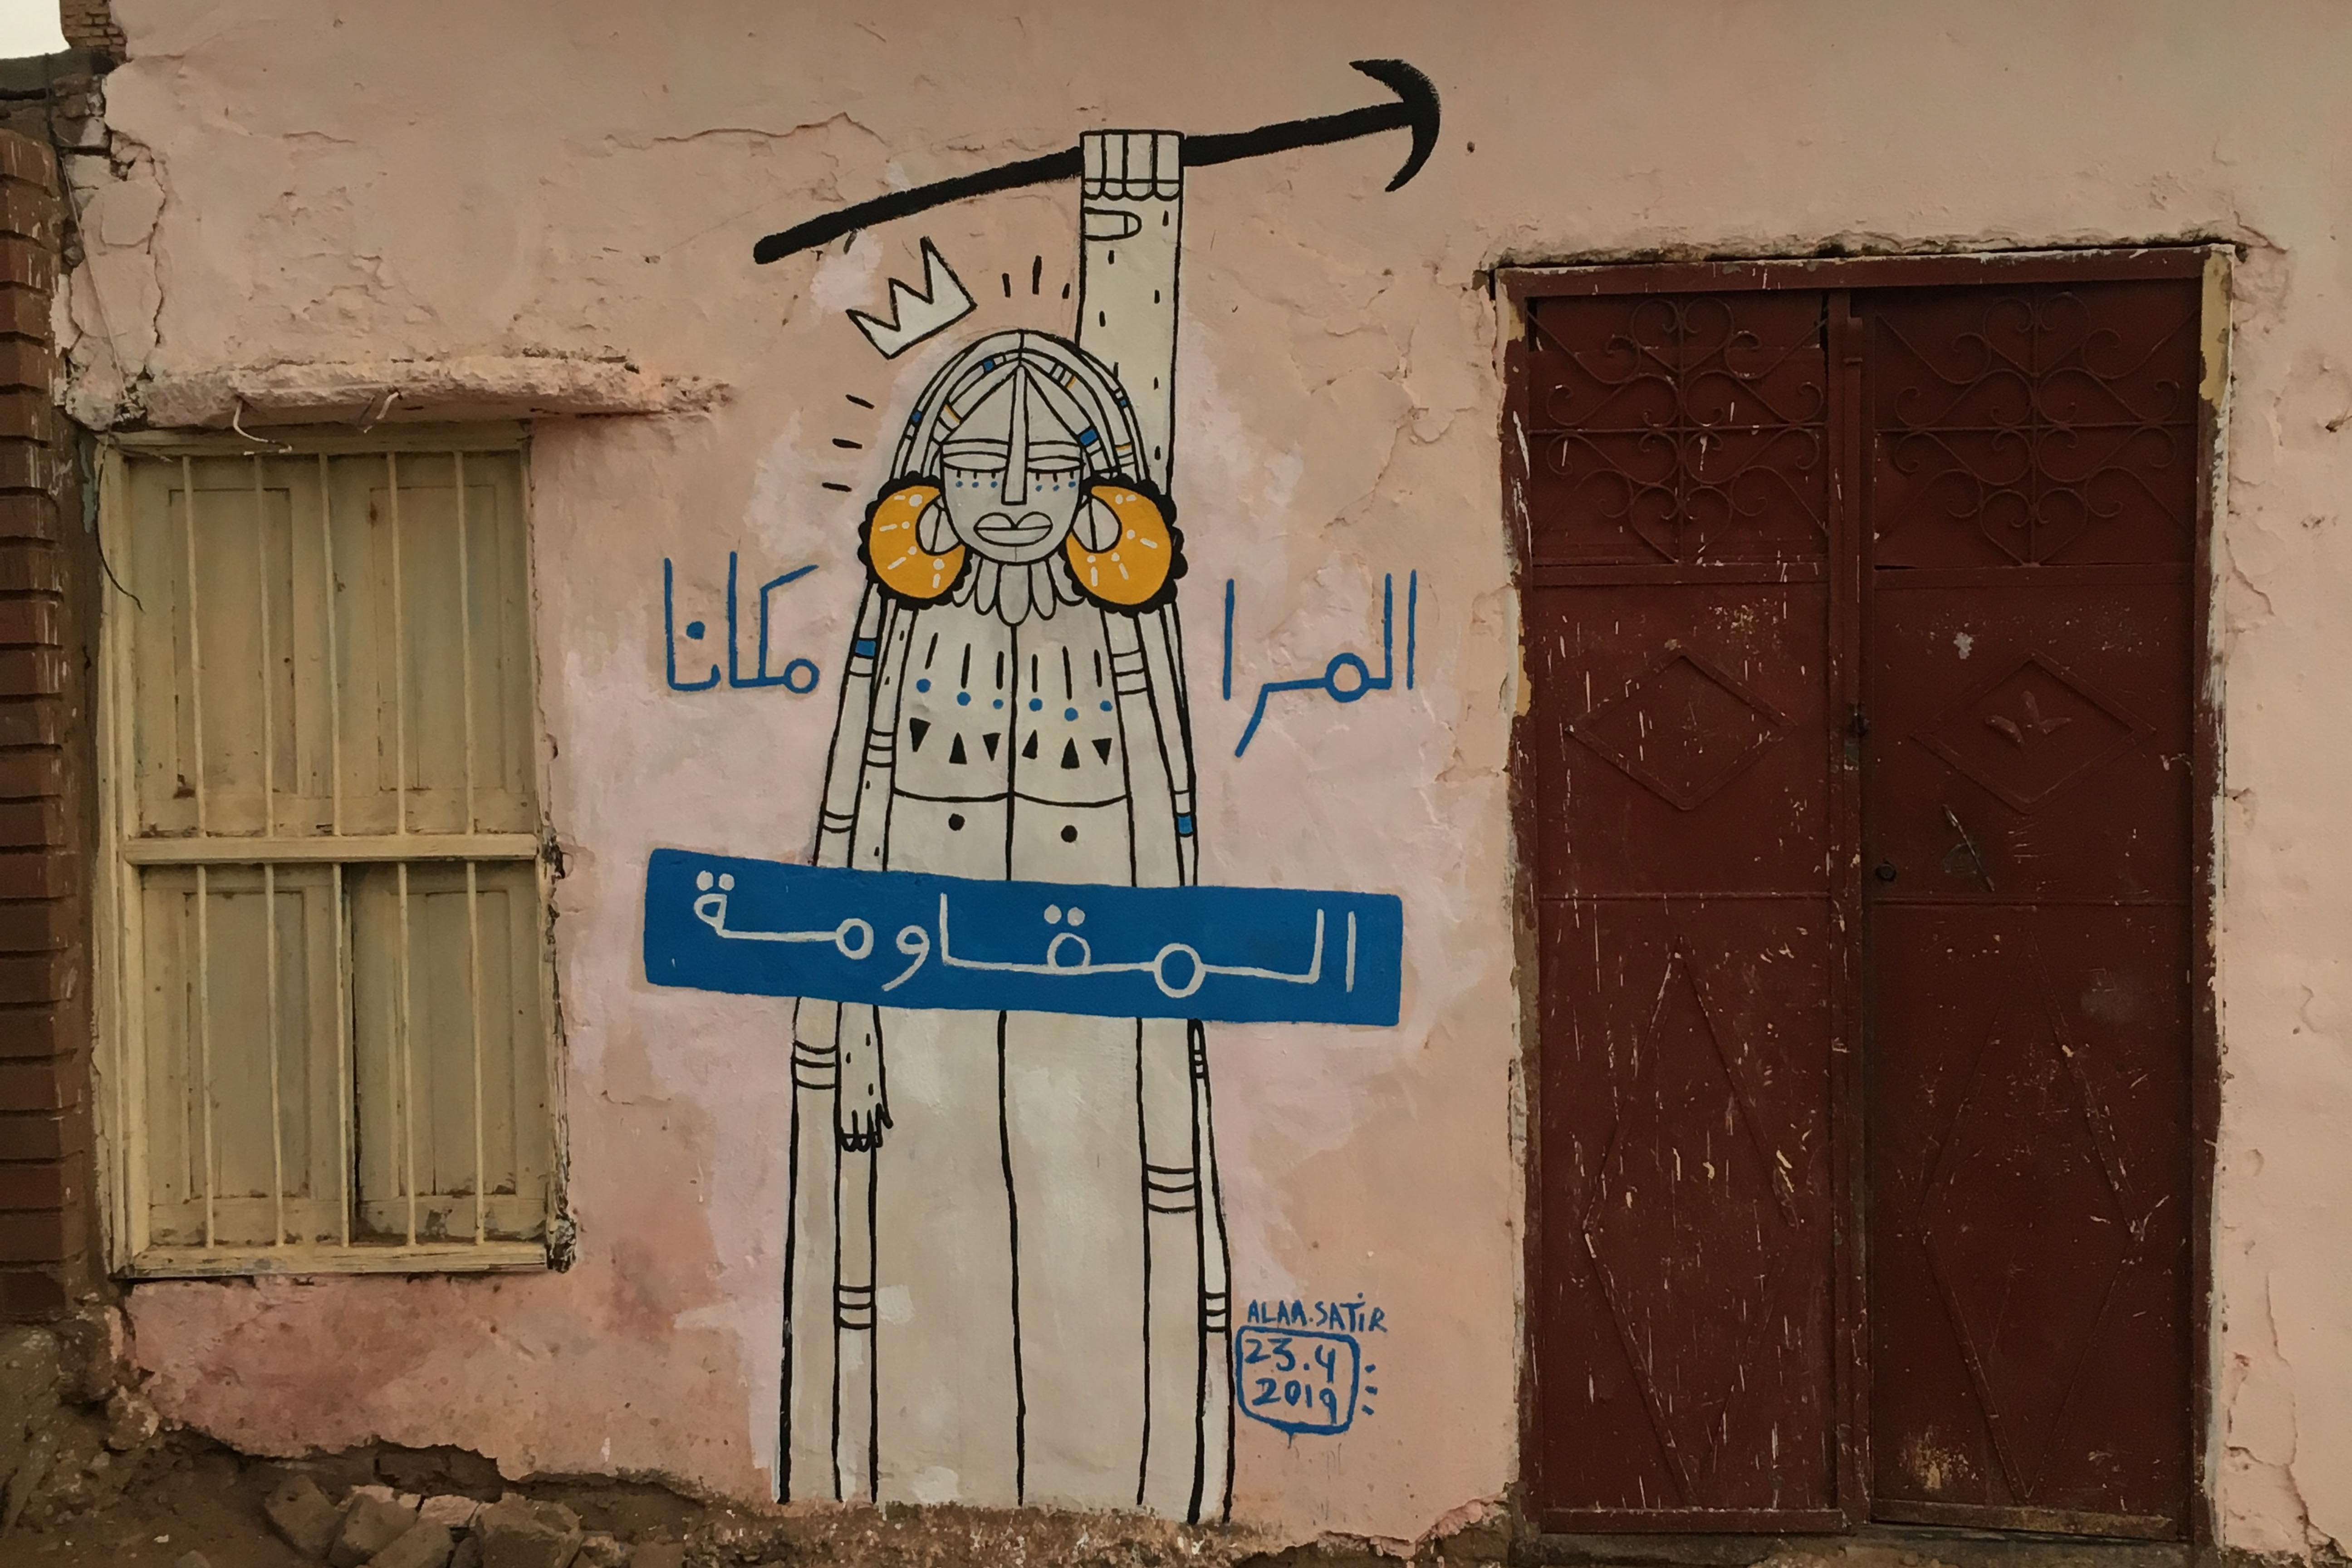 A mural by Sudanese illustrator Alaa Satir, titled 'A woman's place is in the resistance'. Women have been central to Sudan's ongoing revolution, which began in late 2018 and has led to the removal of President Omer al-Bashir after thirty years in power. © Alaa Satir